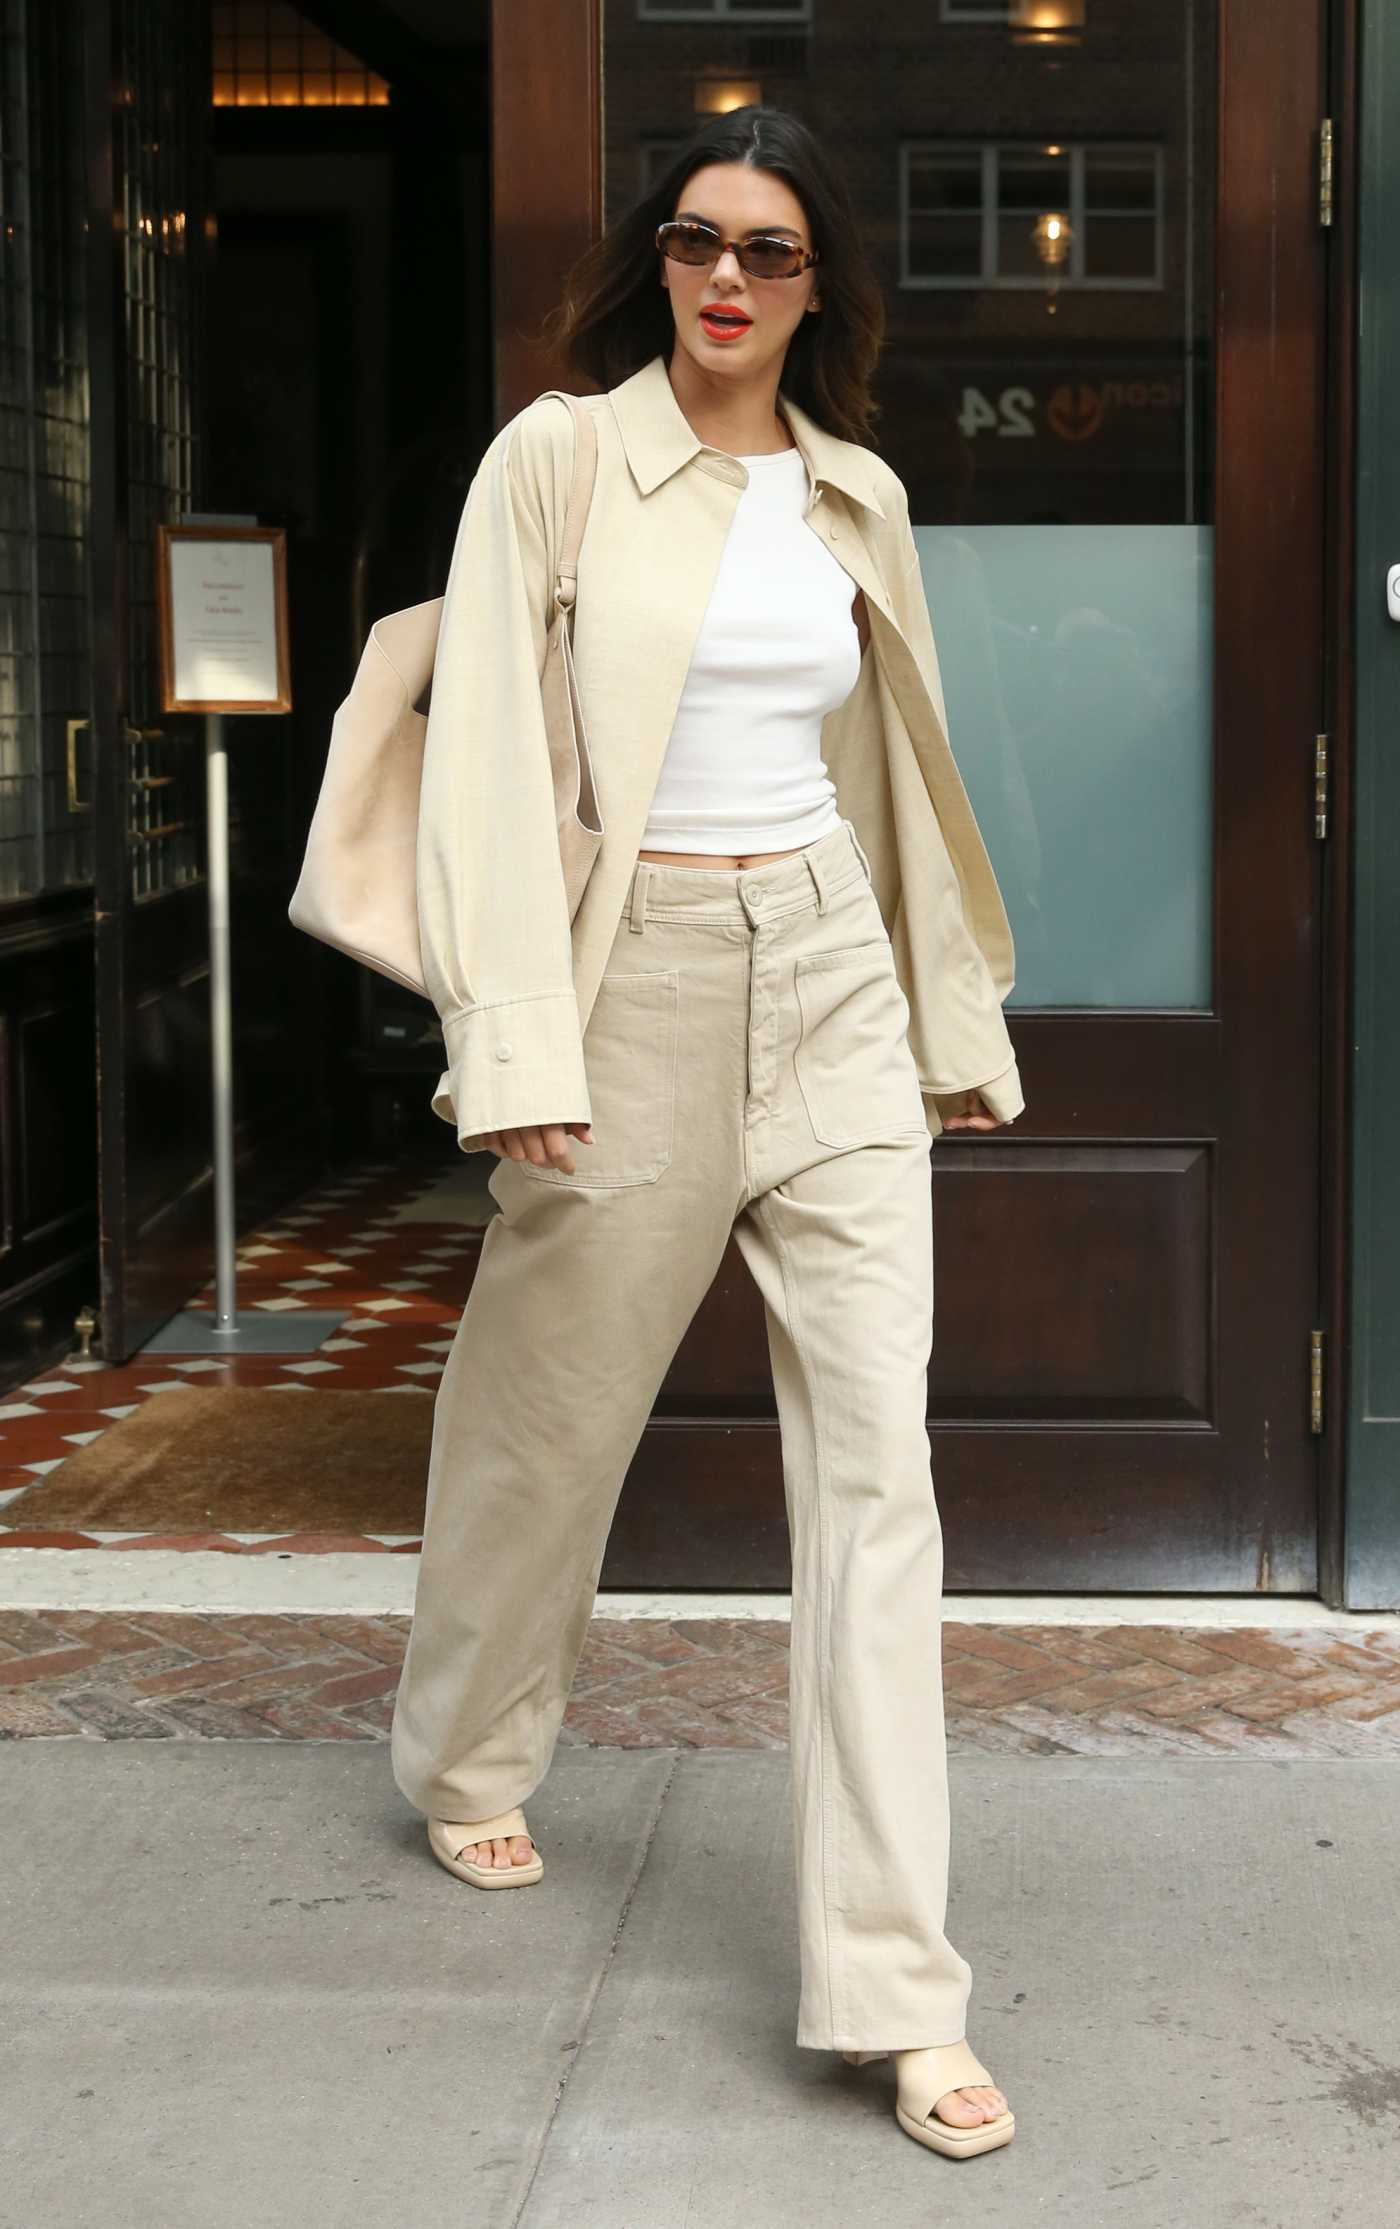 Kendall Jenner in a Beuge Suit Was Seen Out in New York 09/15/2021